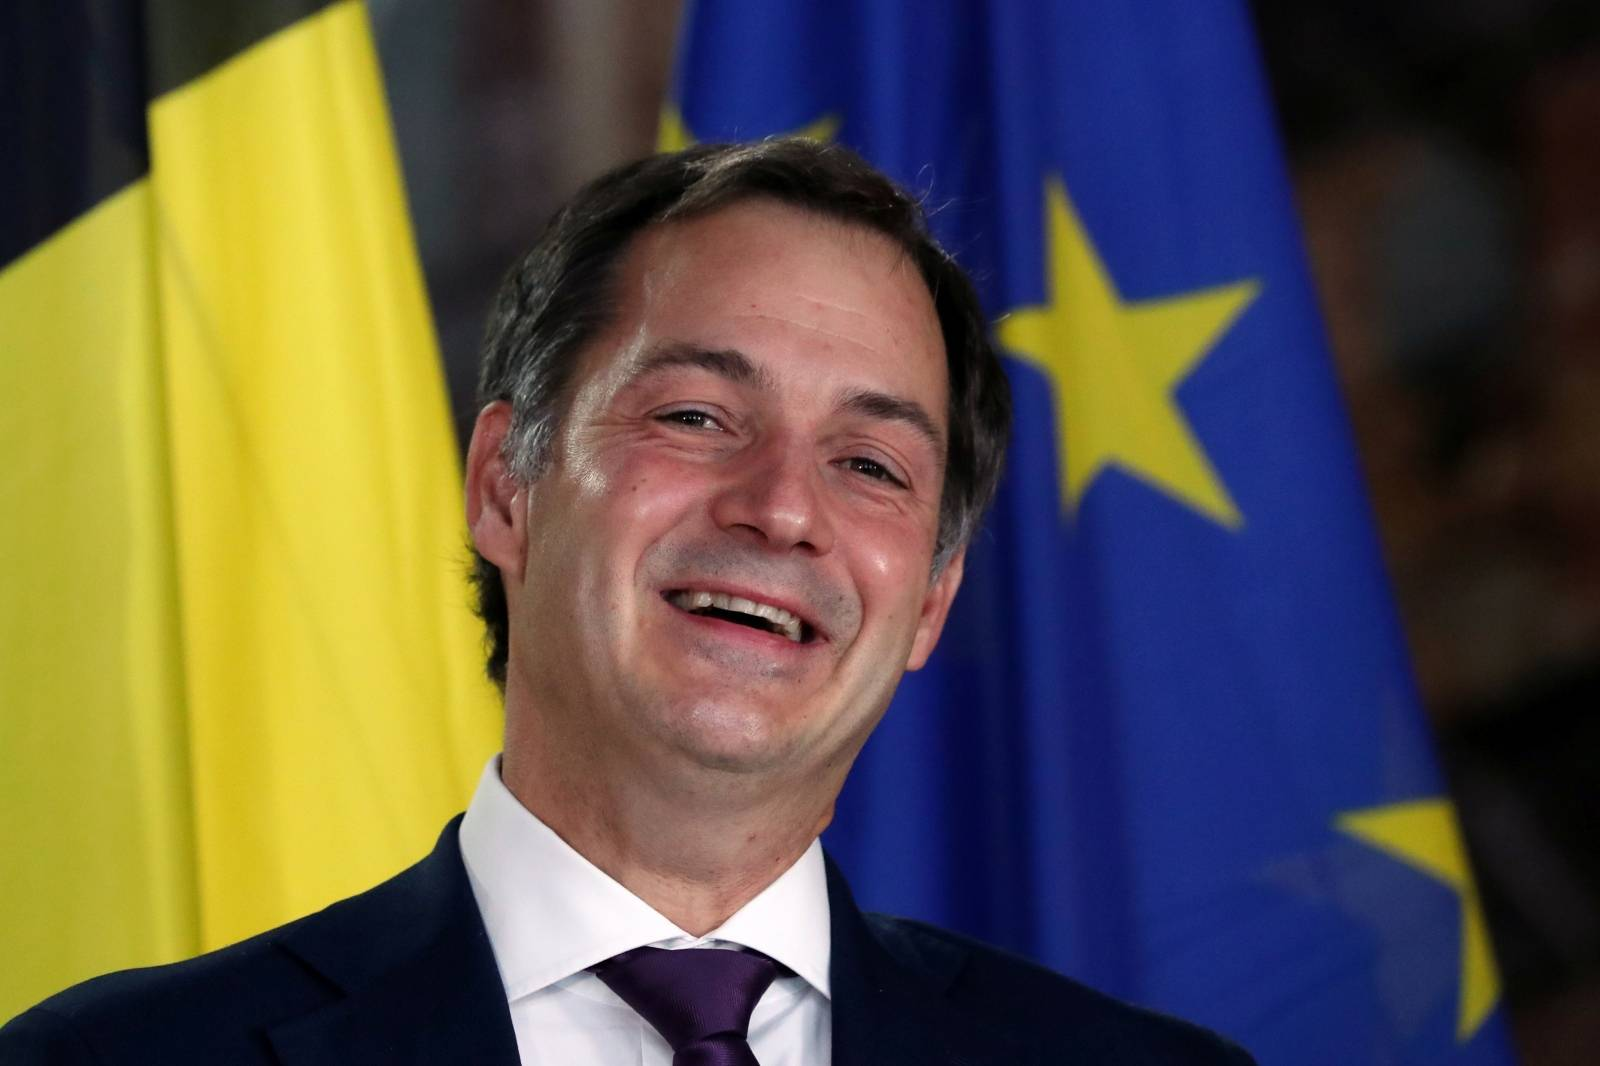 De Croo and Magnette hold news conference in Brussels